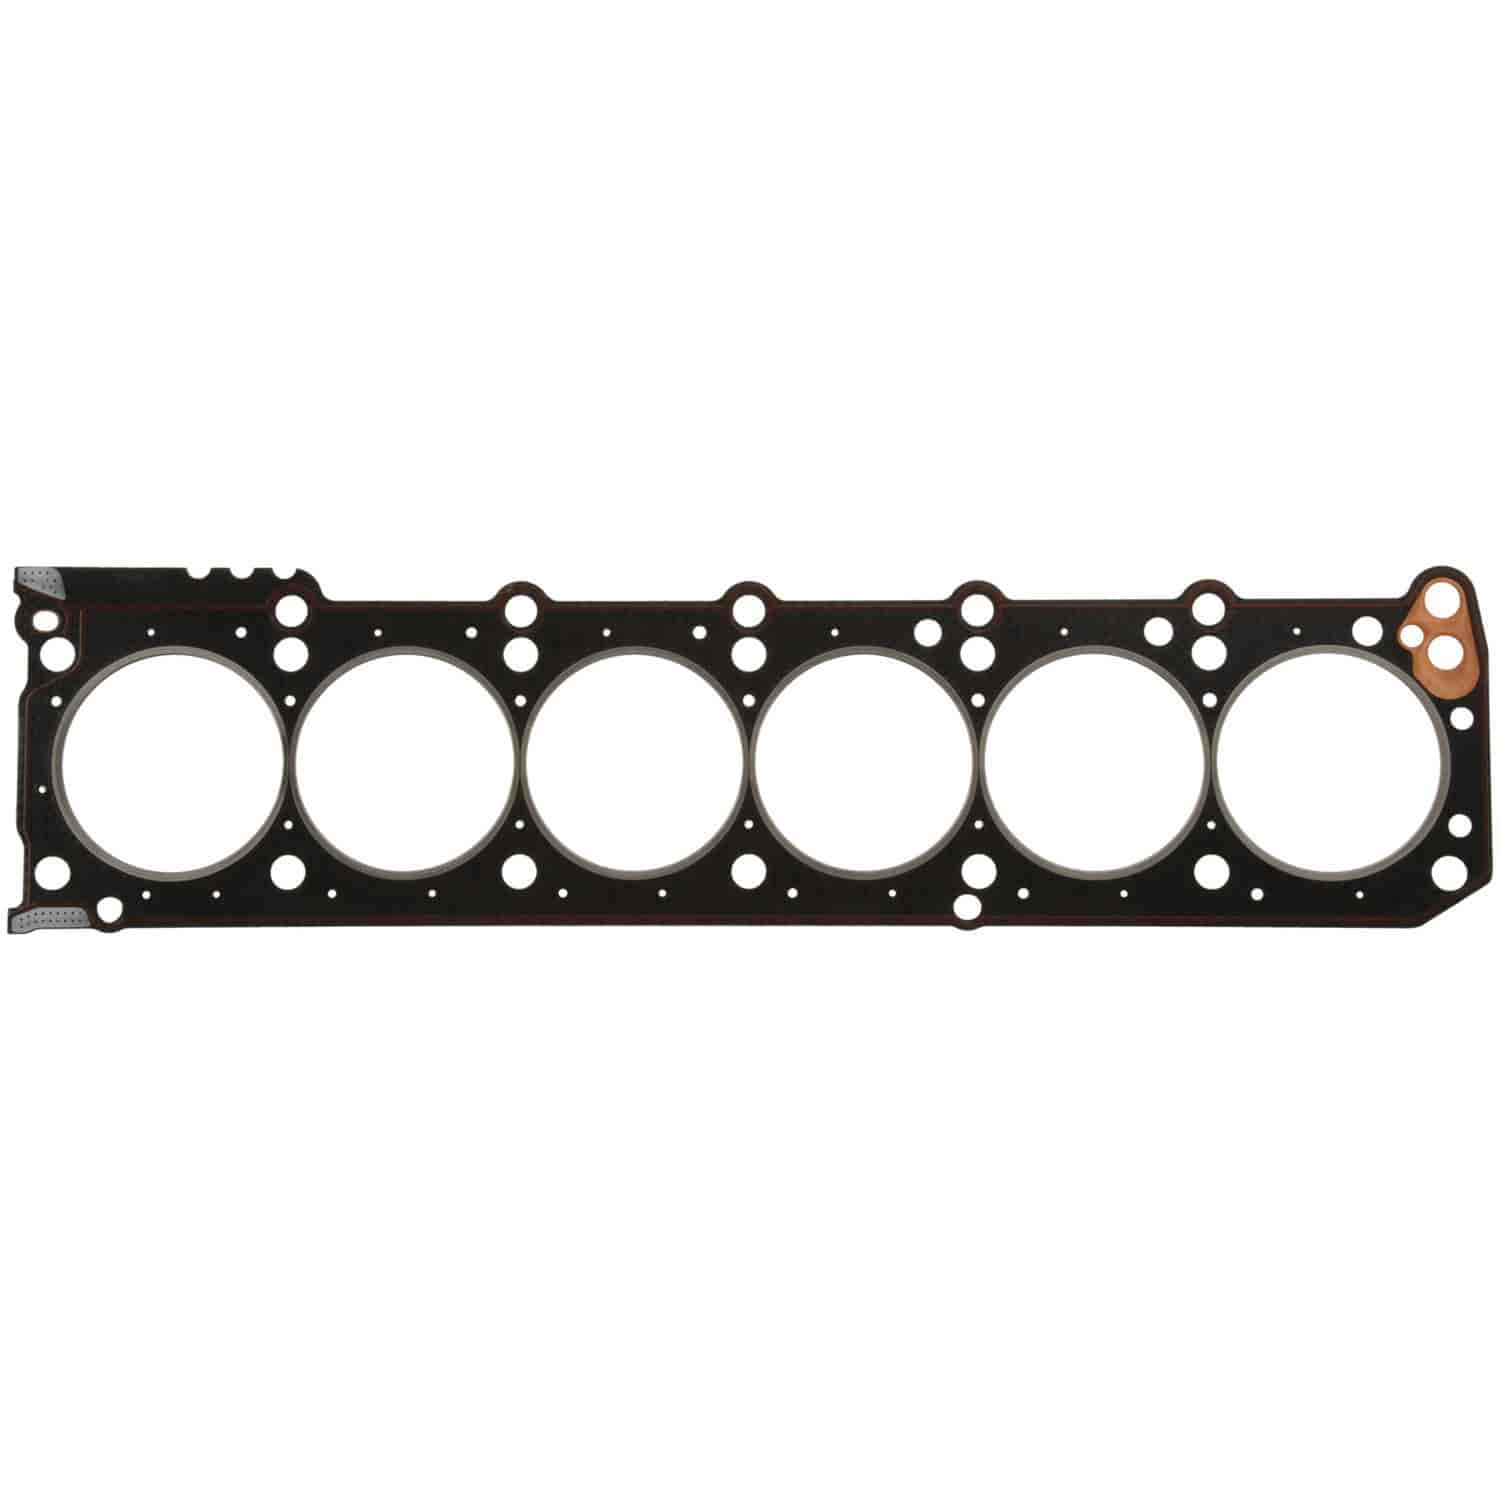 cylinder head gaskets mahle clevite victor reinz